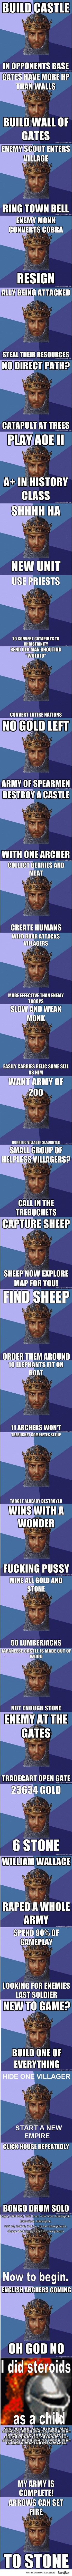 2c01568446e679c5532e2fbbd2a0ad3b some of the age of empires ii rules this is awesome! games